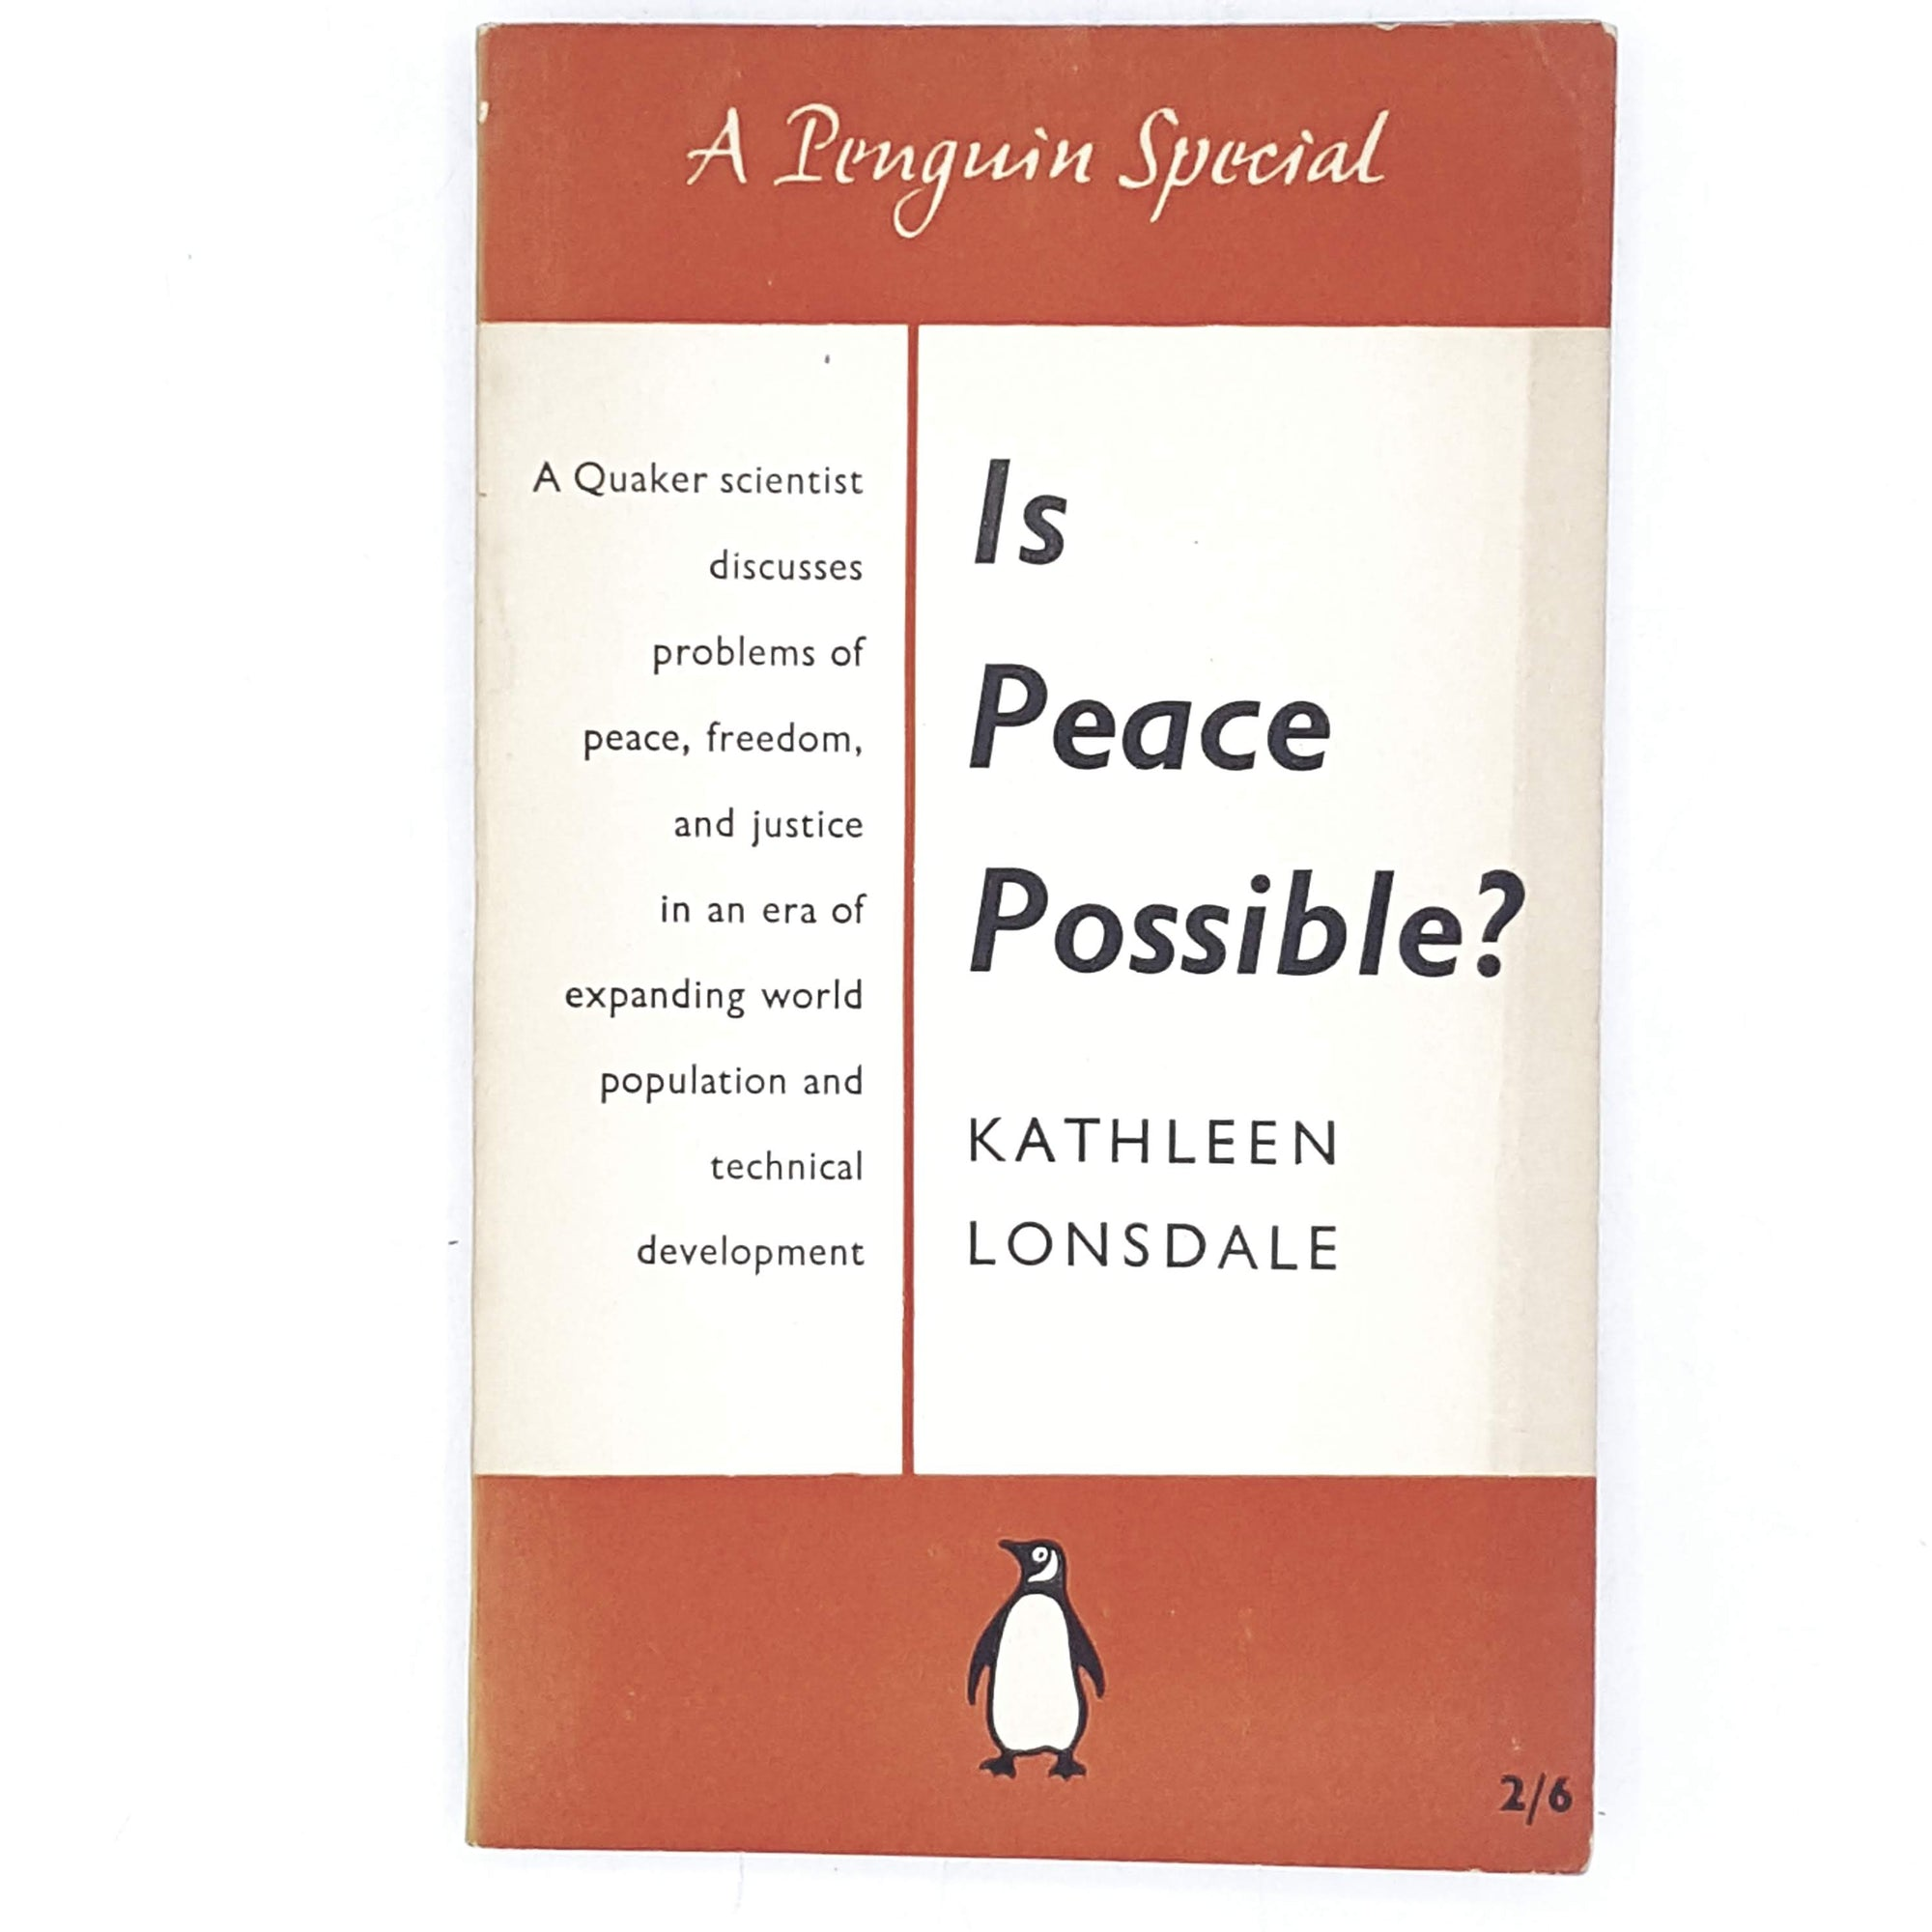 First Edition Penguin Special: Is Peace Possible? 1957